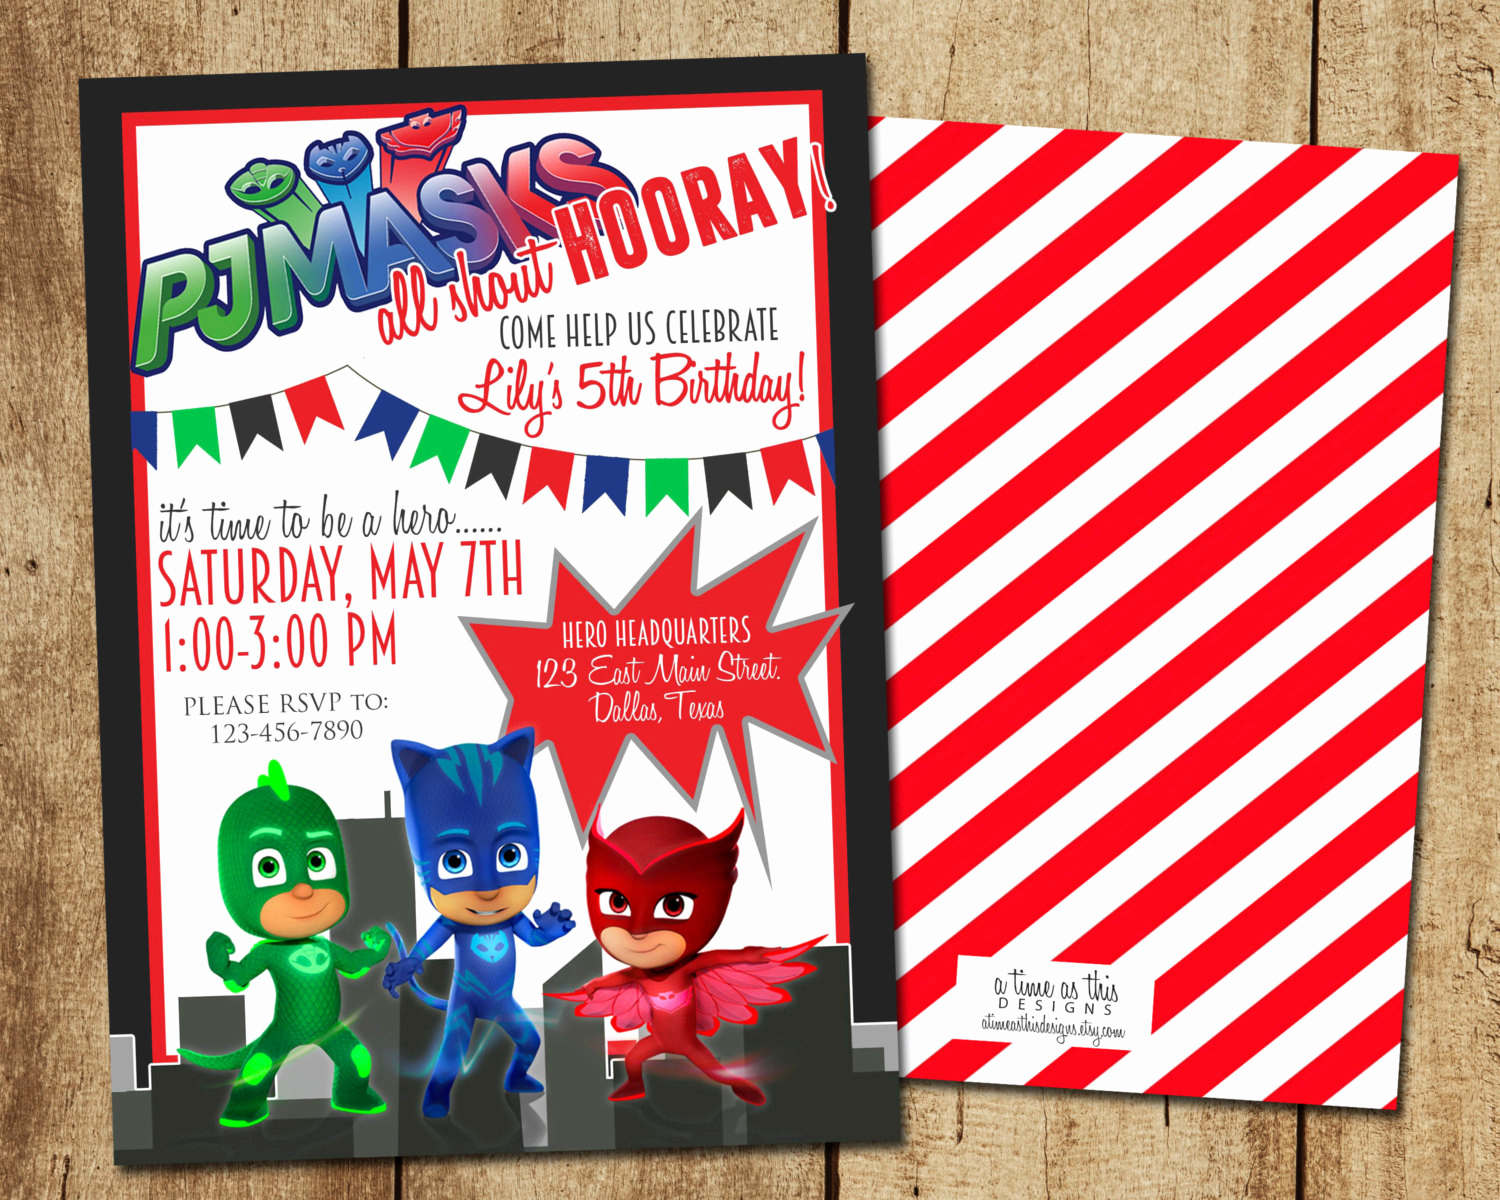 Pj Mask Invitation Free Lovely Pj Masks Birthday Invitation Digital Printable Pj Masks